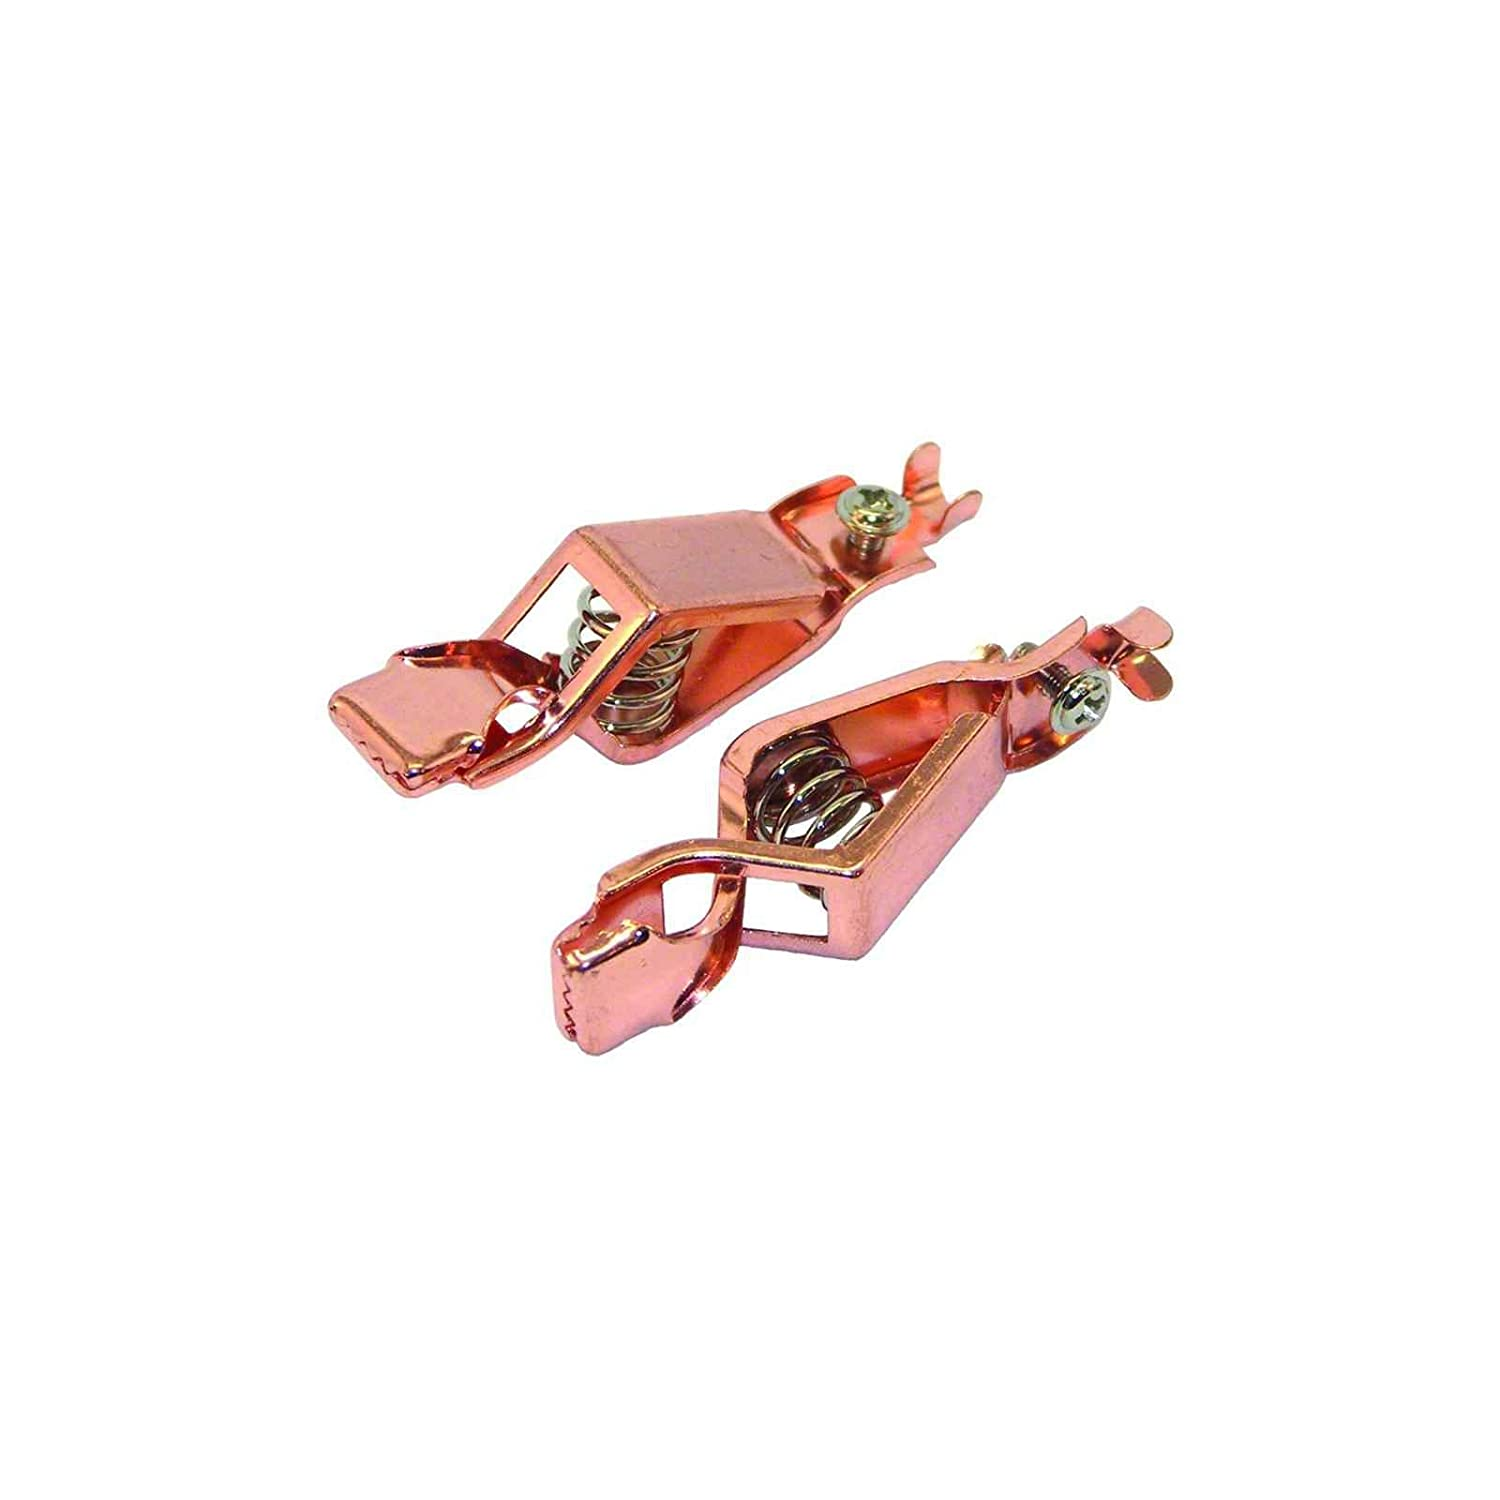 Invincible Marine Copper Alligator Battery Clips, 20-AMP Pair BR51010